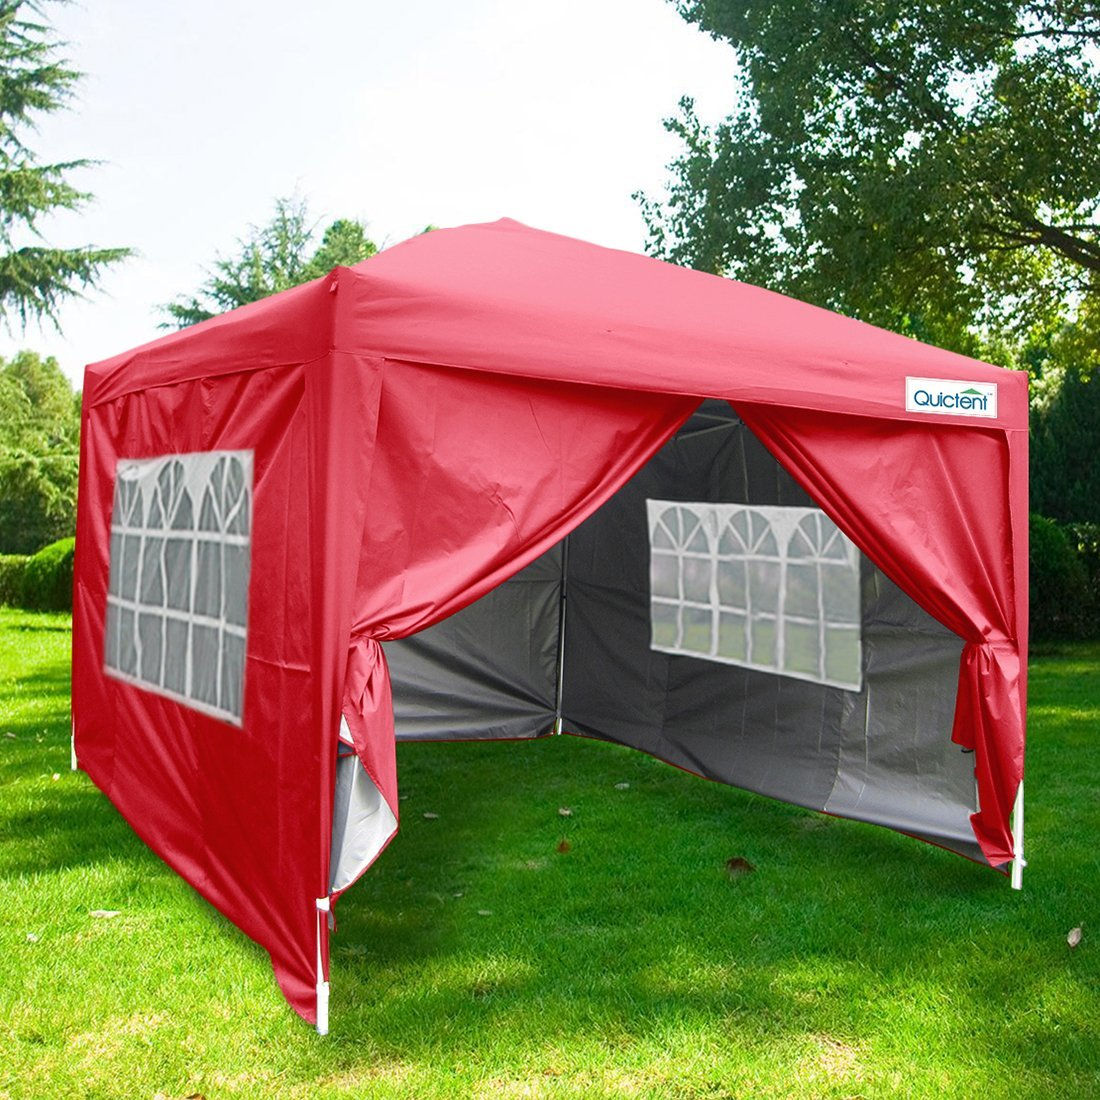 Quictent Silvox Waterproof 8x8u0027 EZ Pop Up Canopy Gazebo Party Tent Red Portable Style & Quictent Silvox Waterproof 8x8u0027 EZ Pop Up Canopy Gazebo Party Tent ...